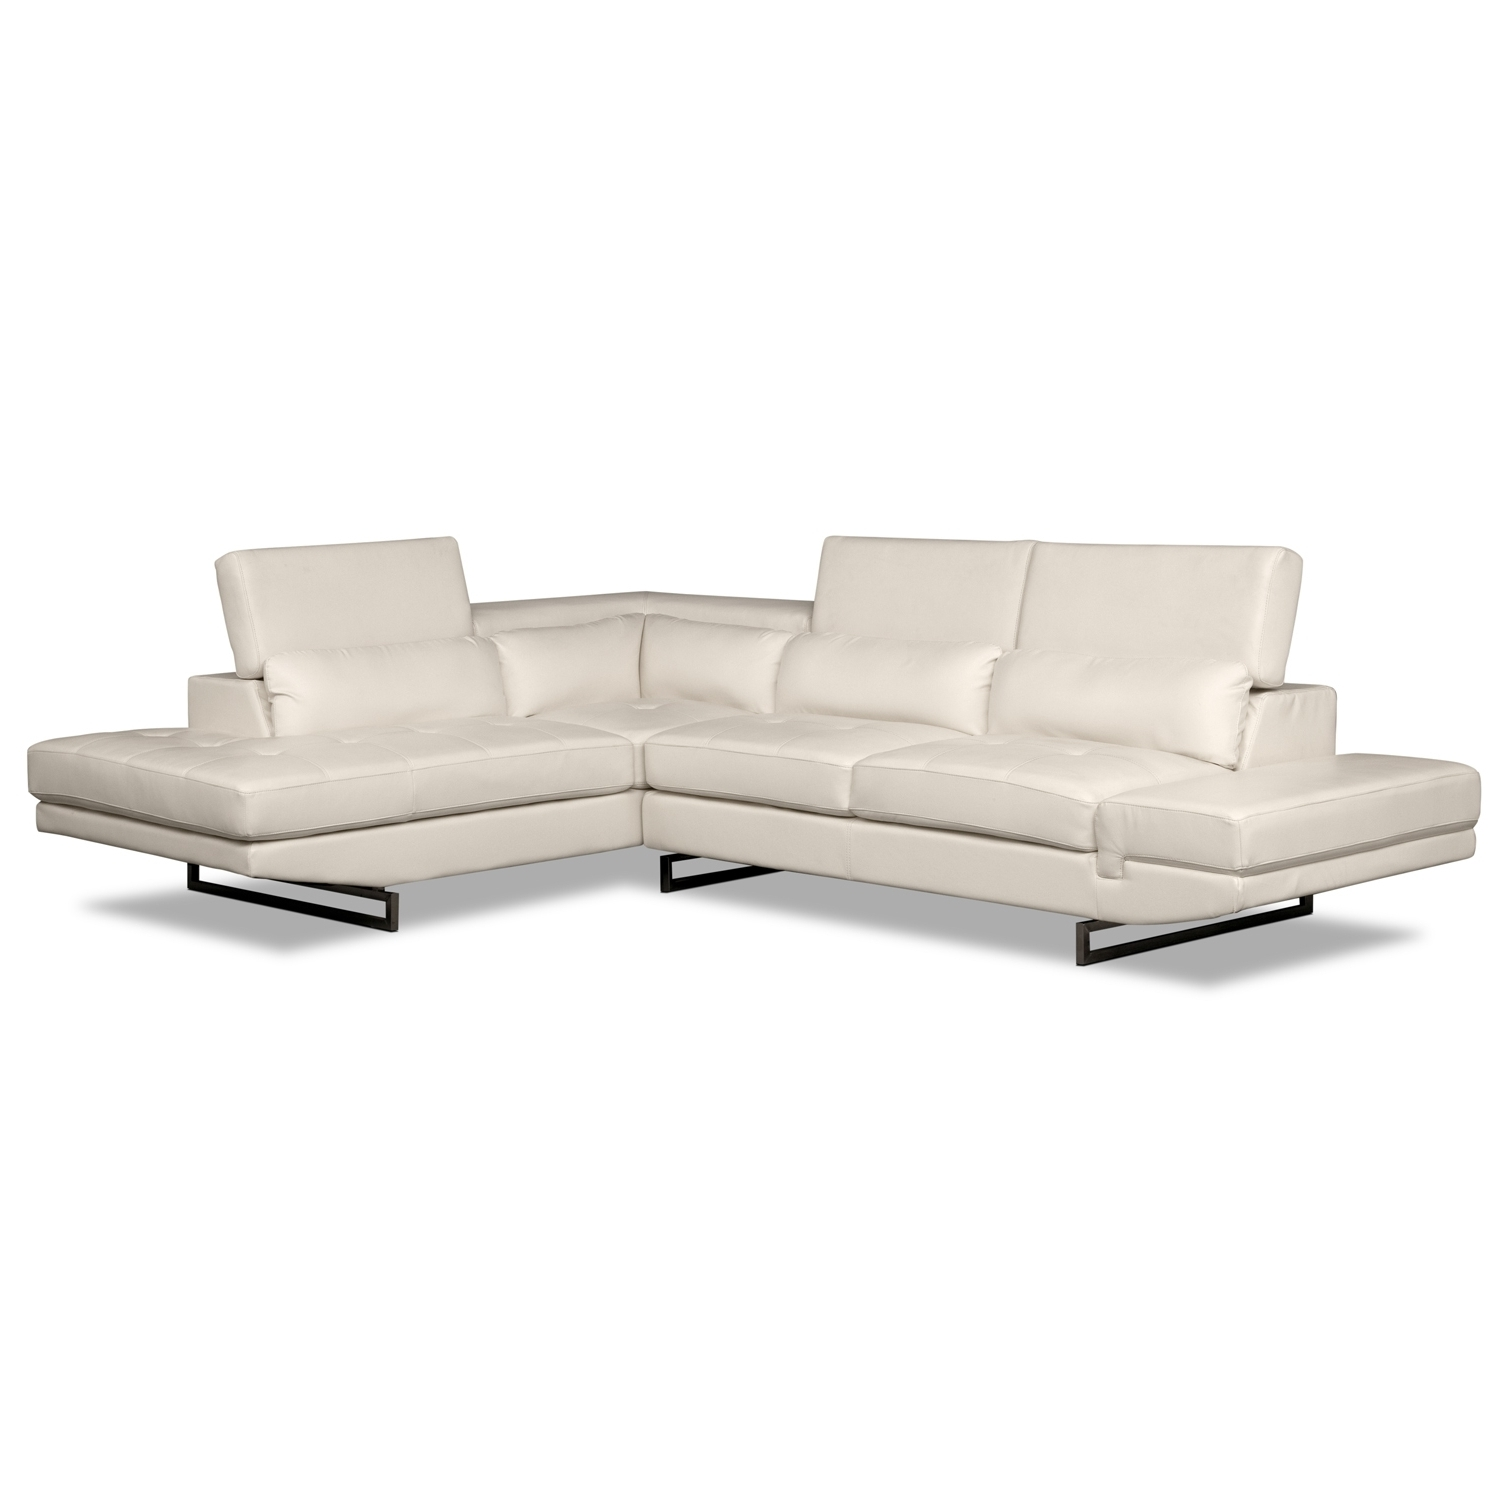 Most Recently Released Value City Sectional Sofas Pertaining To Living Room Design: Comfy White Leather Sectional For Small Spaces (View 16 of 20)